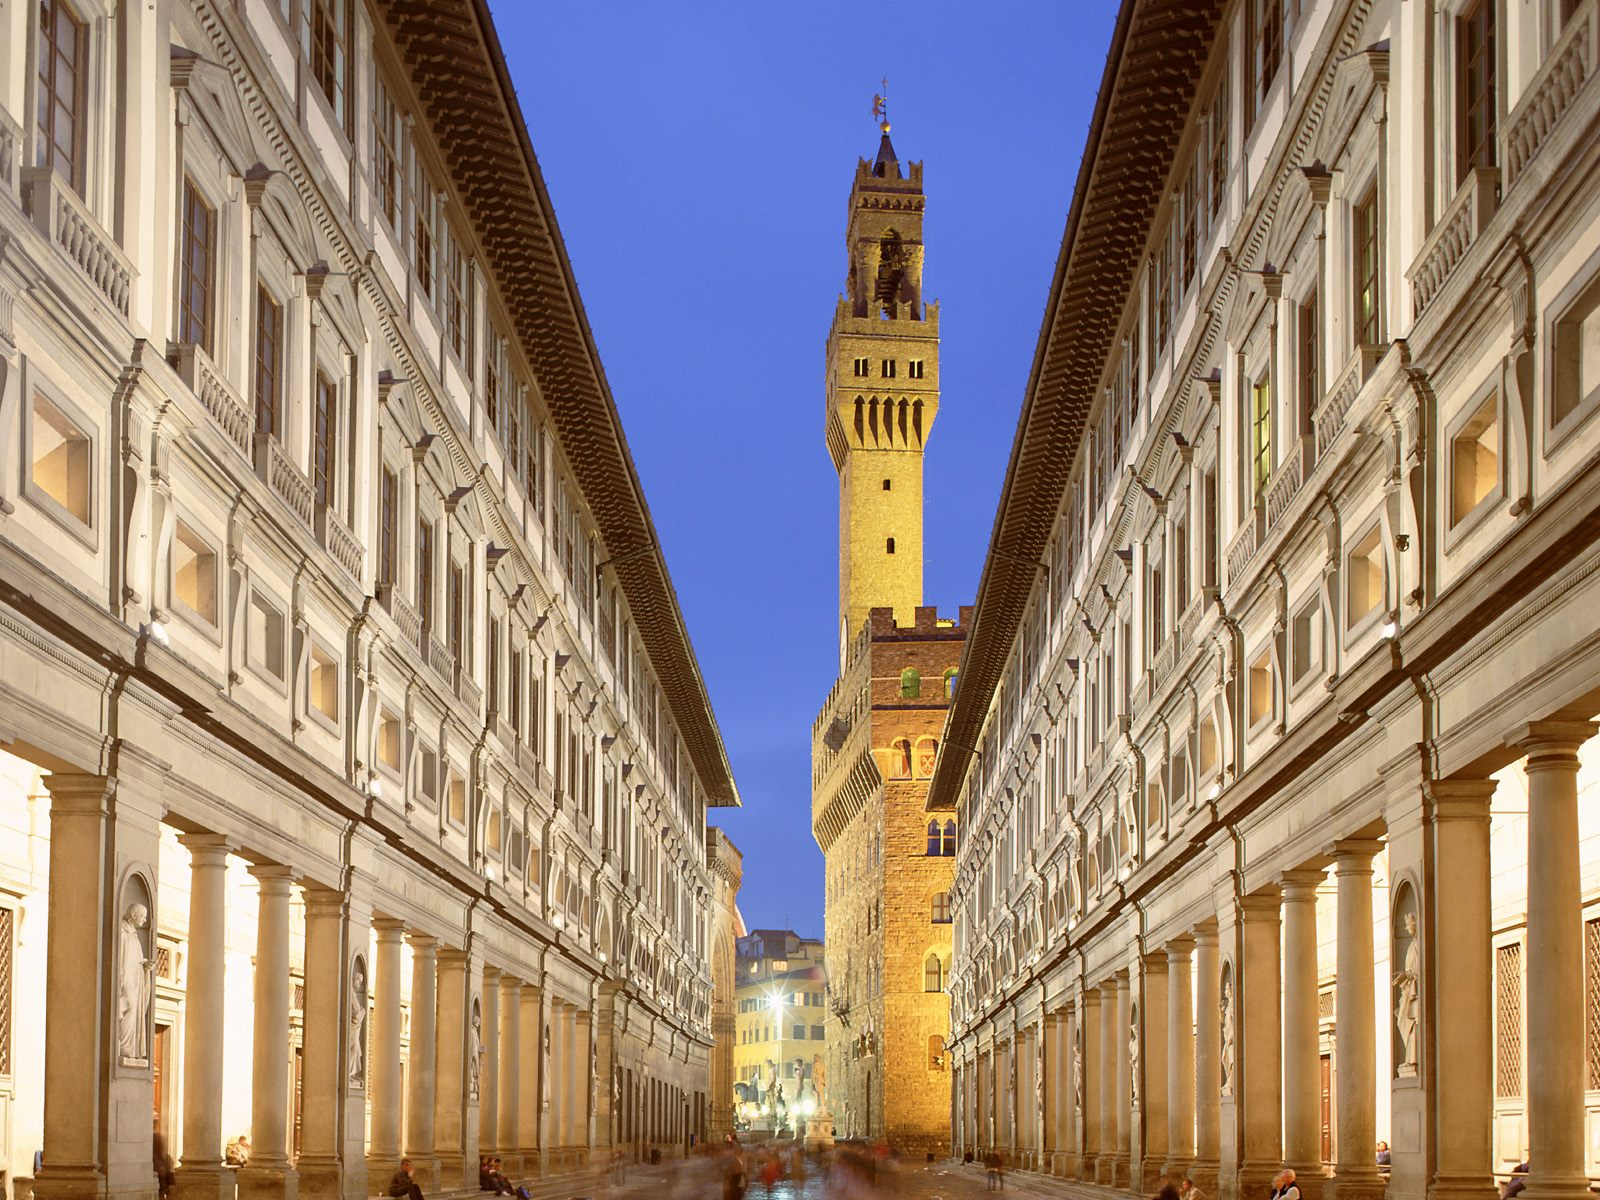 Beautiful sights Florence, Italy, Uffizi Gallery outside wall view